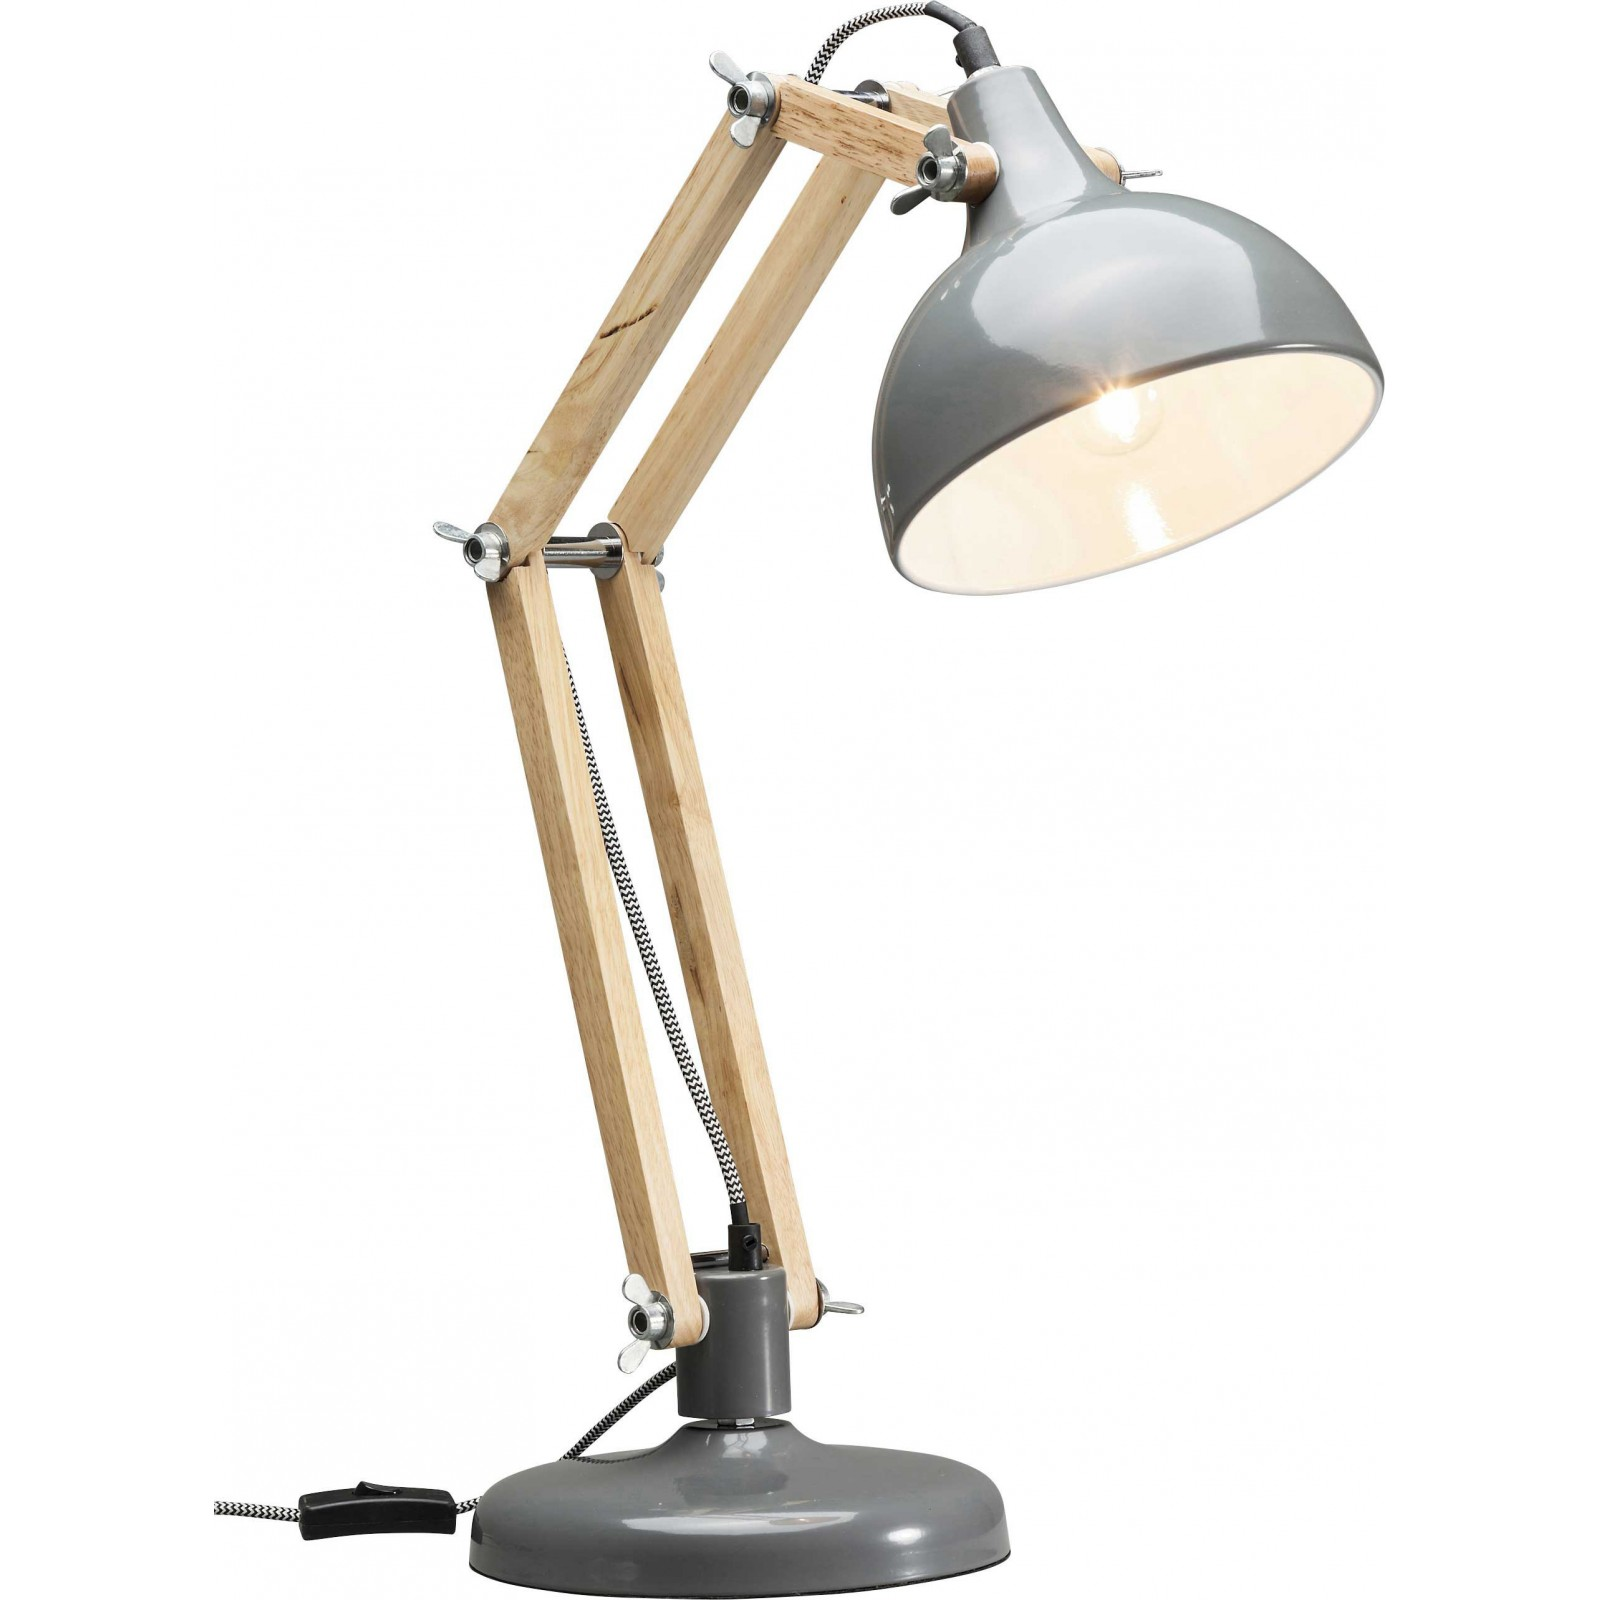 Decoration Murale Grise Lampe De Table Grise - Work Station - Kare Design